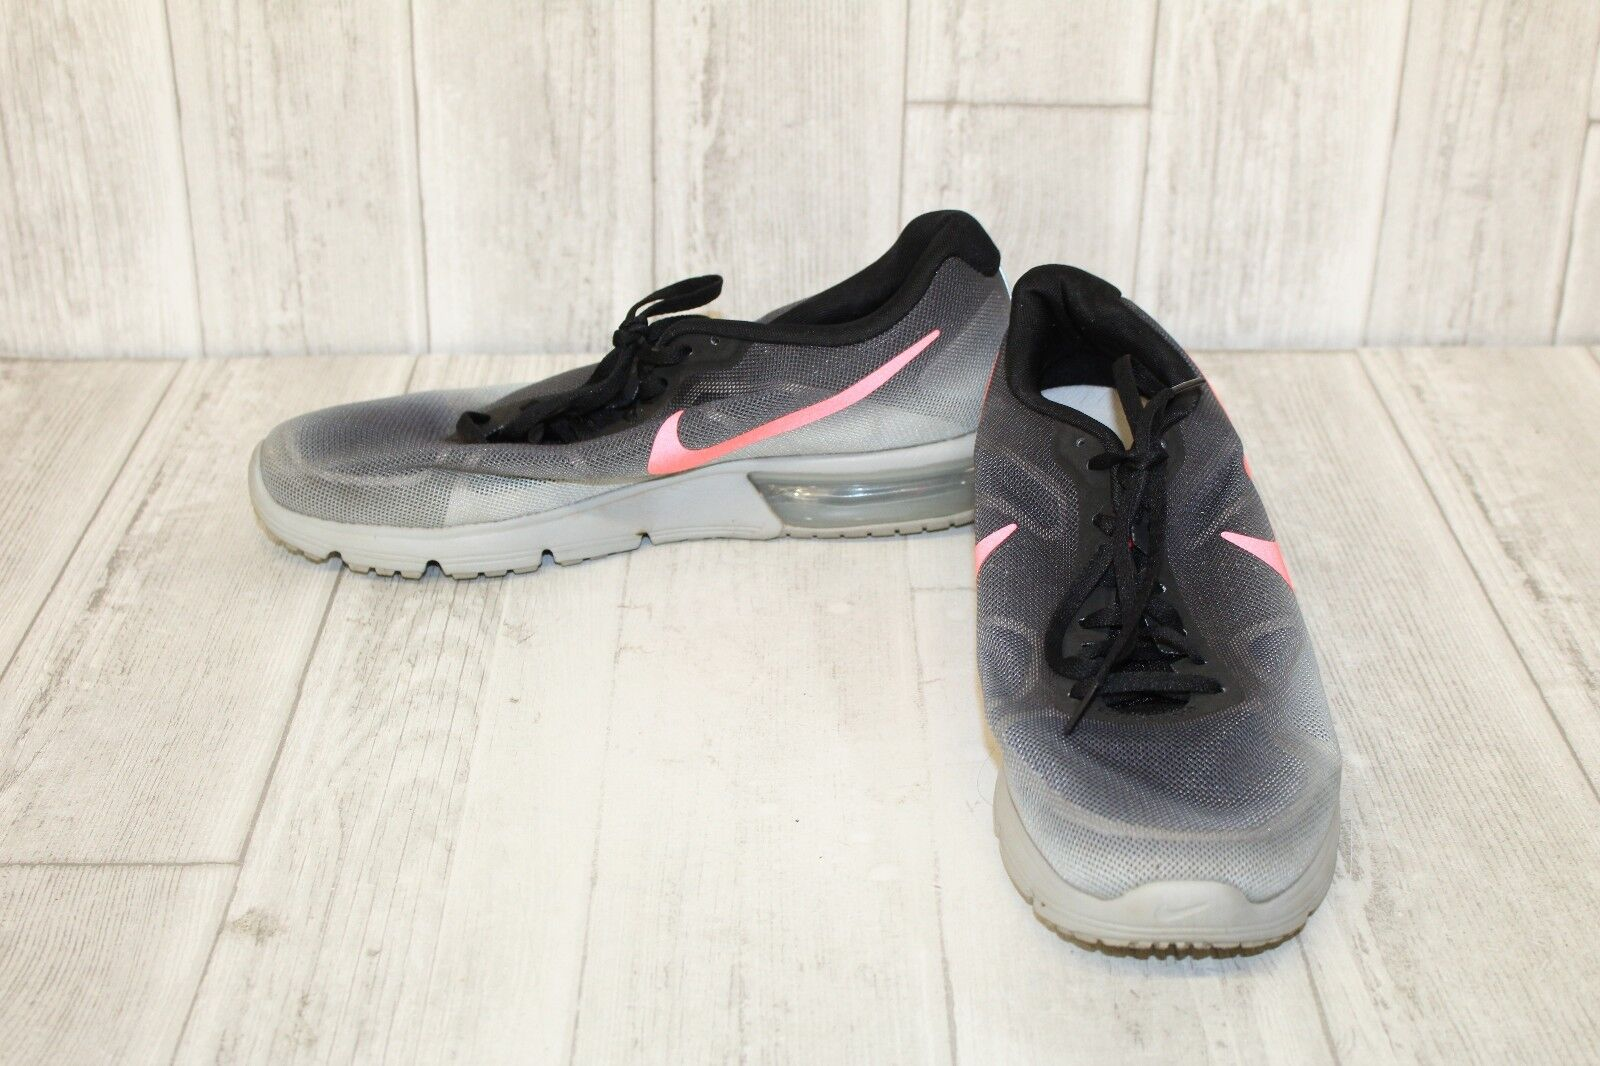 Nike Air Max Sequent Running Shoes, Men's - Comfortable  Casual wild